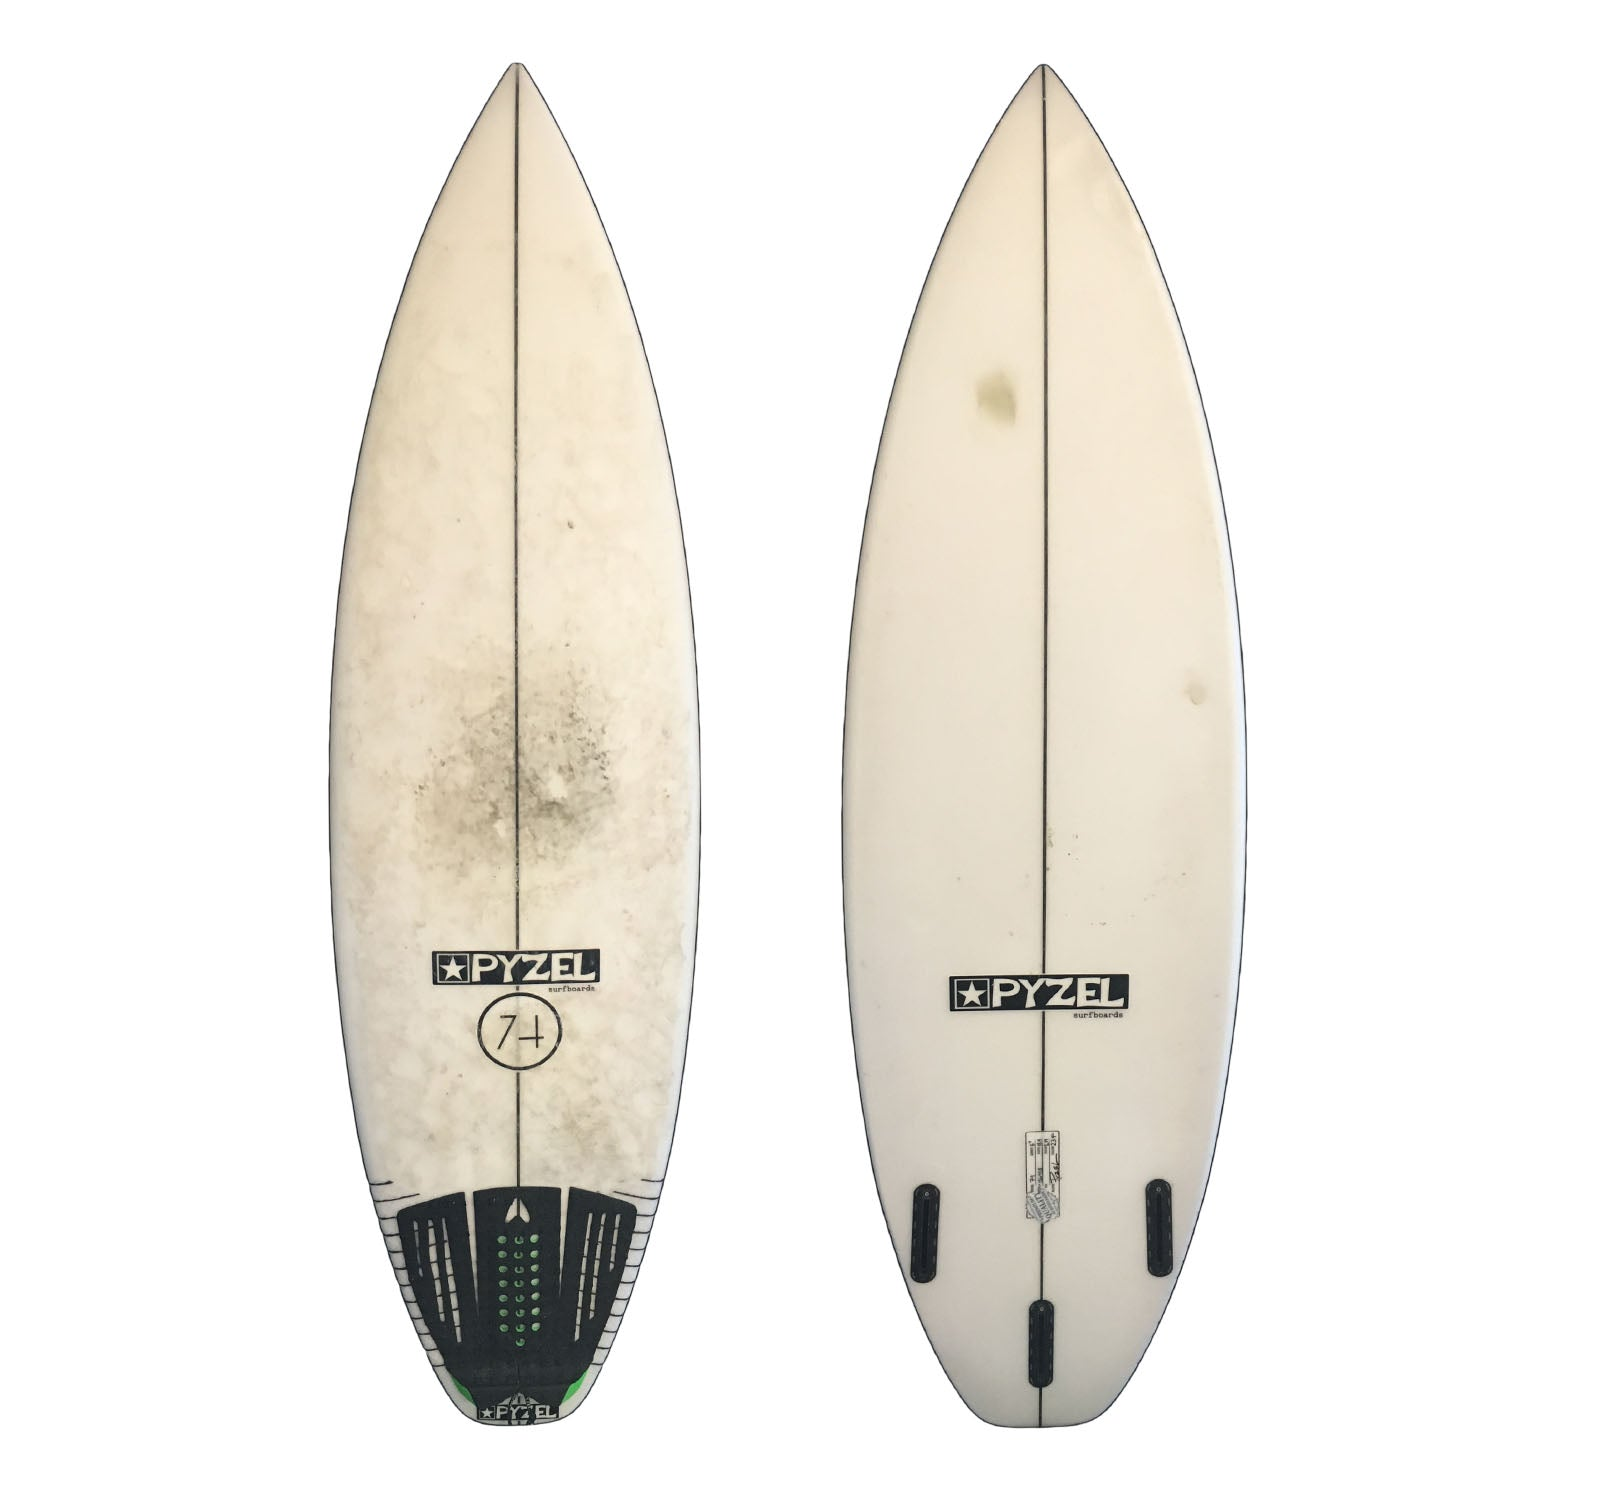 Pyzel 74 5'7 Used Surfboard